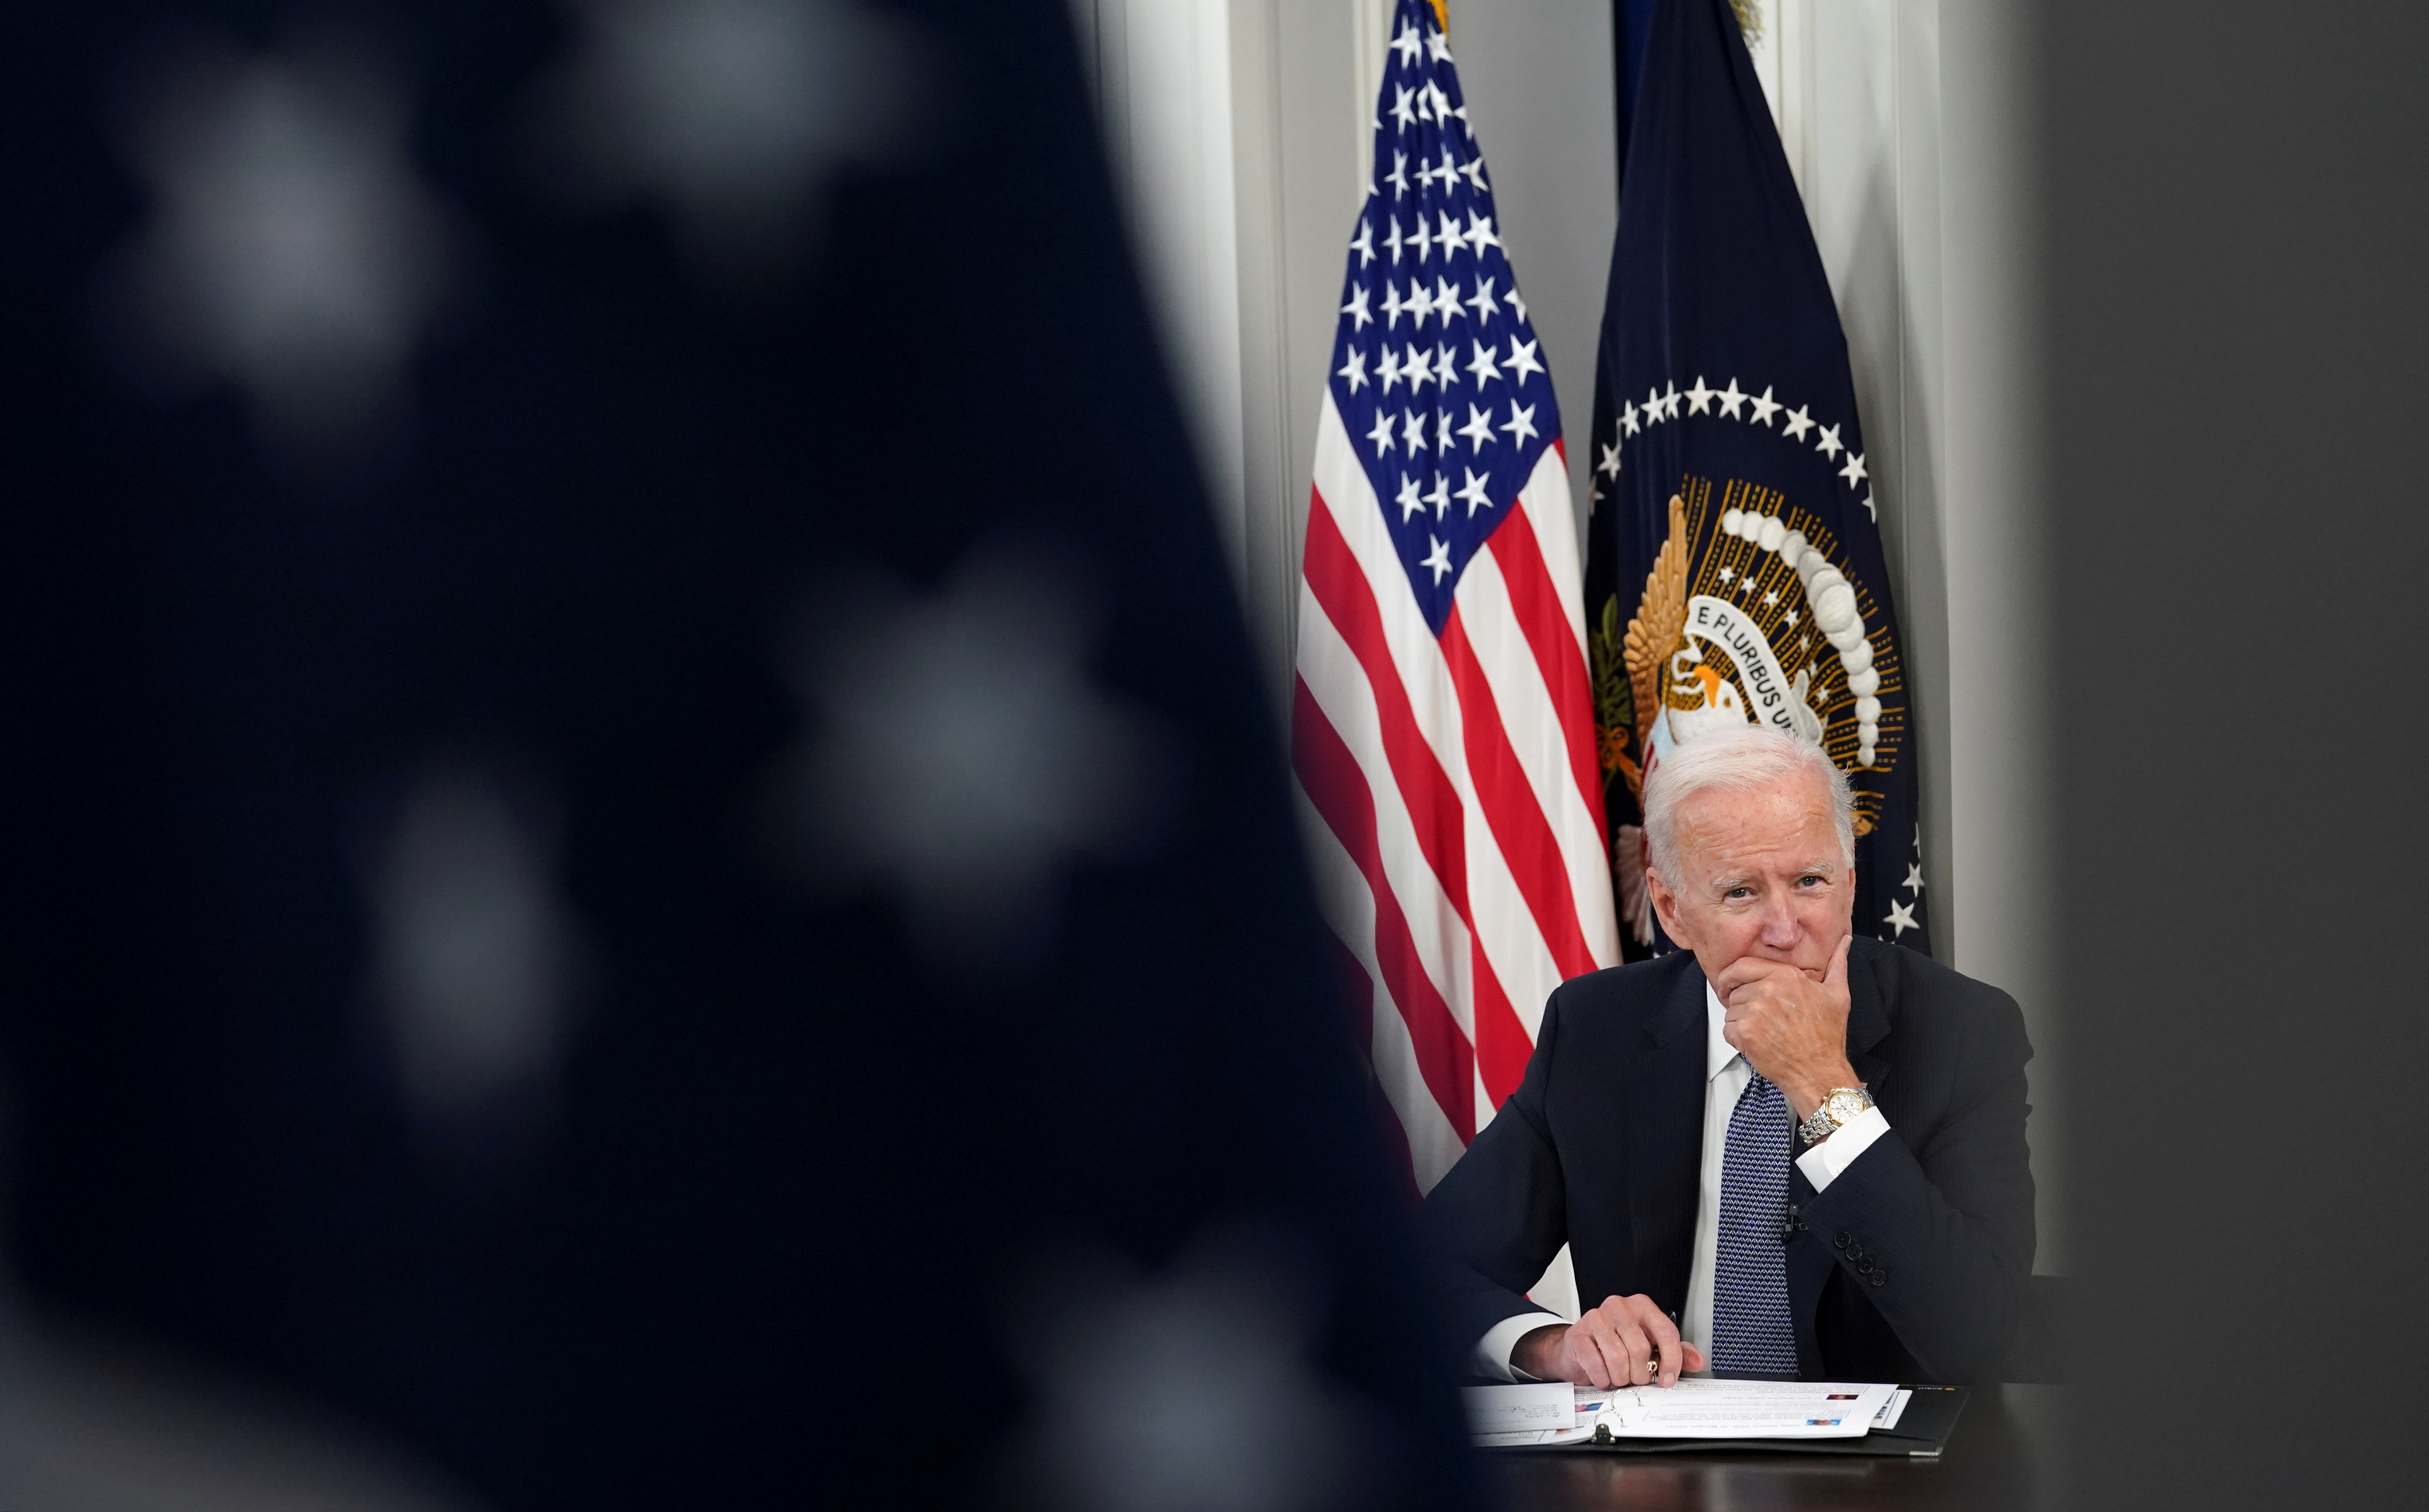 U.S. President Joe Biden holds a meeting with business leaders and CEOs about the debt limit at the White House in Washington, U.S., October 6, 2021. REUTERS/Kevin Lamarque/File Photo